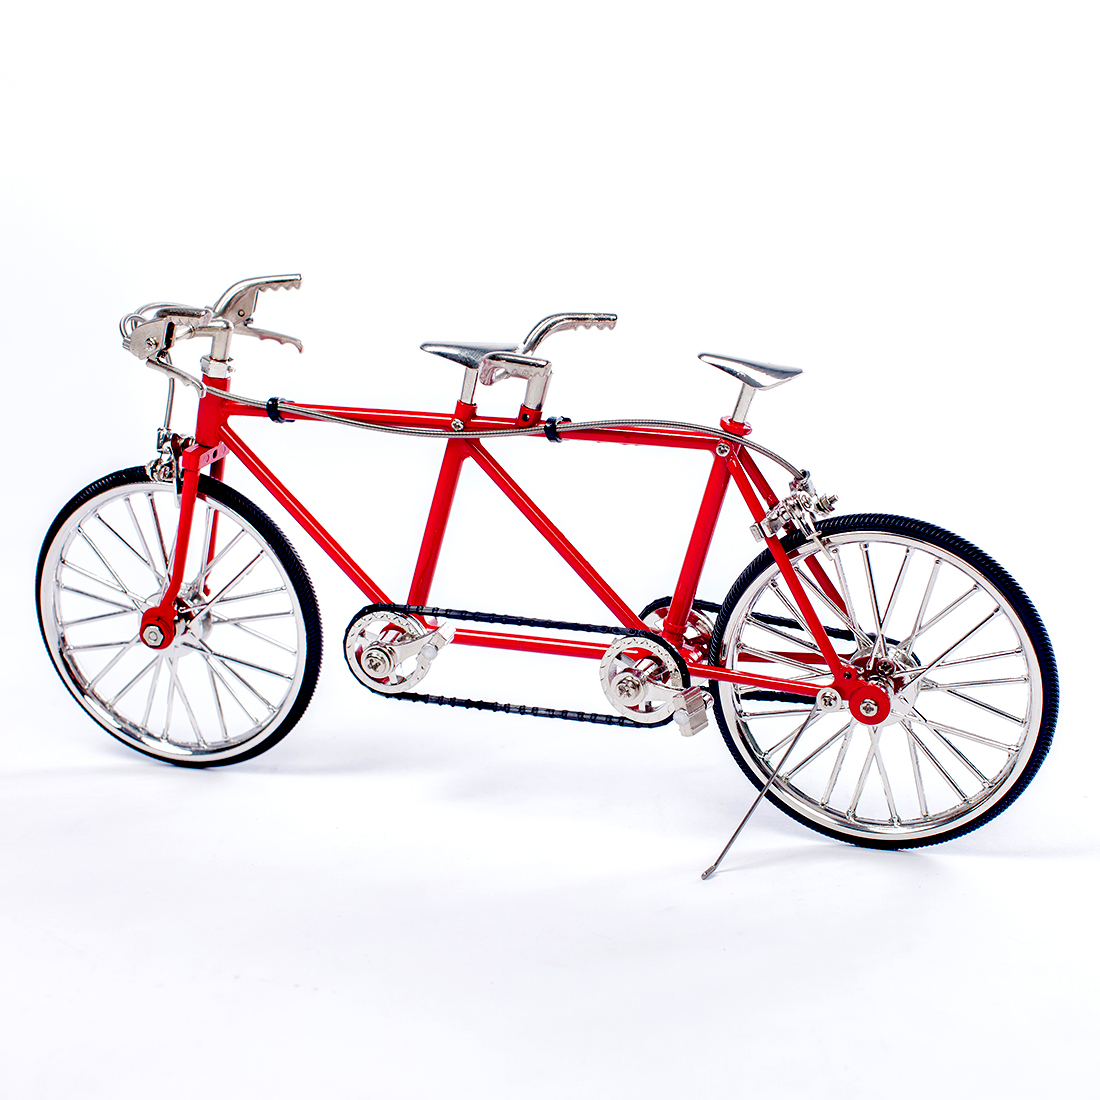 3D DIY 1:10 Metal Assembly Jigsaw Puzzle Tandem Bicycle Model Kit Educational Gift For Family Friends - FS-622